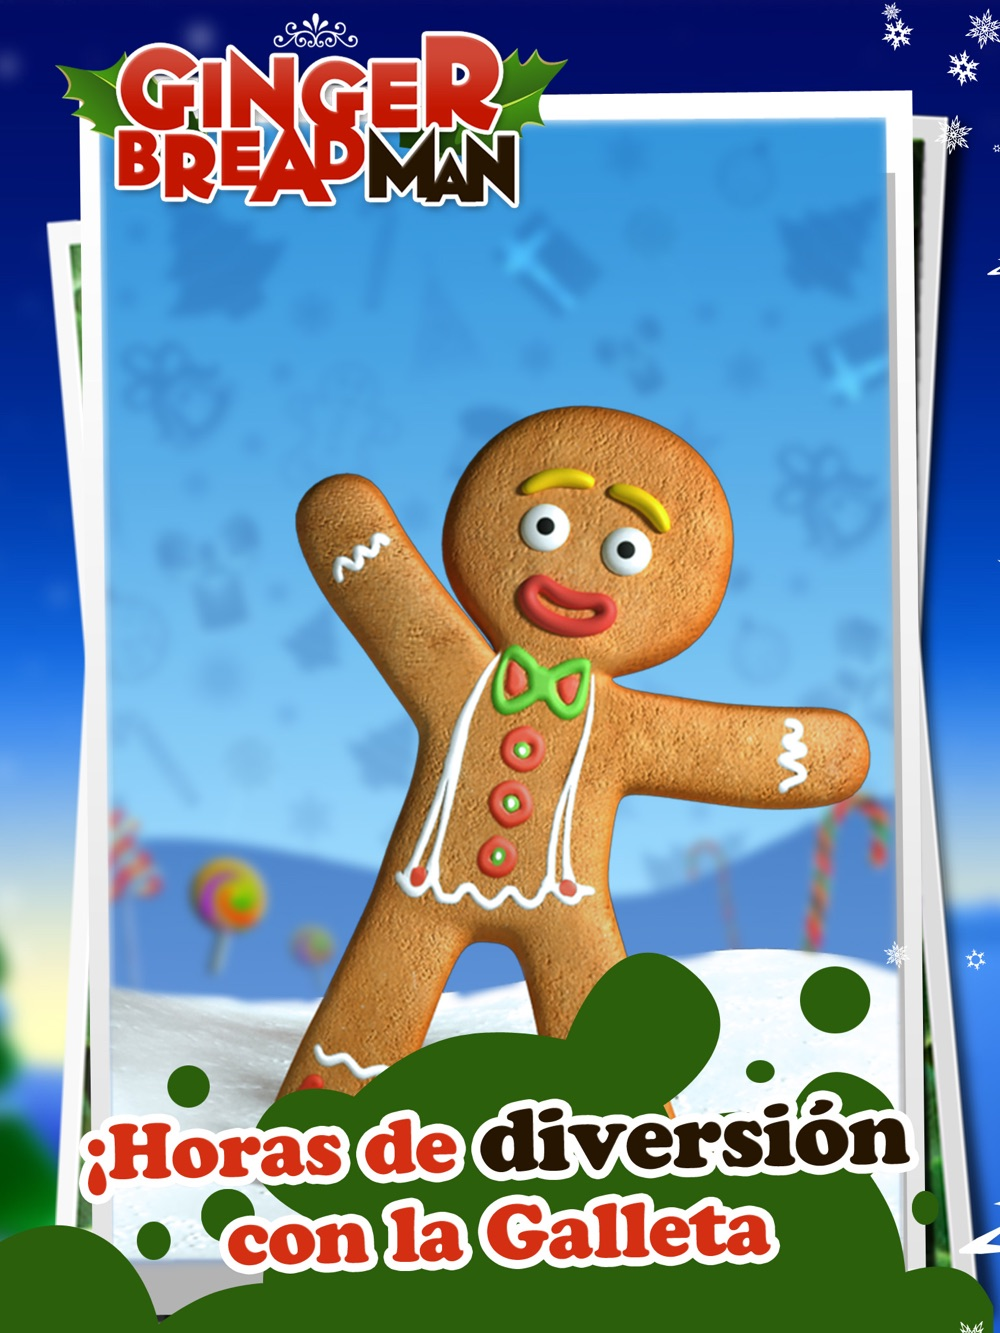 Talking Gingerbread Man HD Cheat Codes